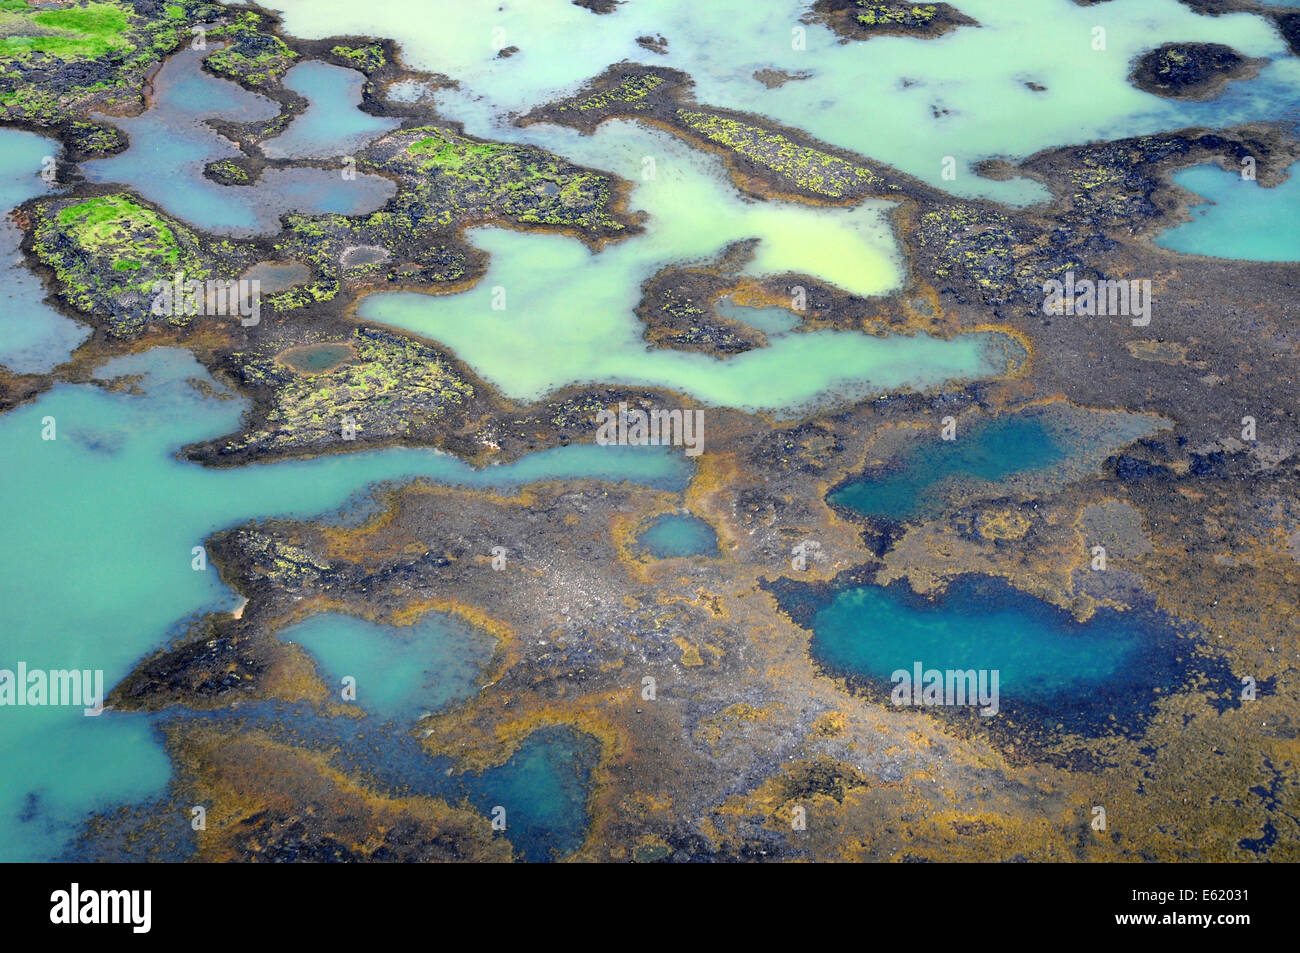 Aerial photo of delta patterns from melting glacier at the mouth of Olfusa River in Southwest Iceland - Stock Image